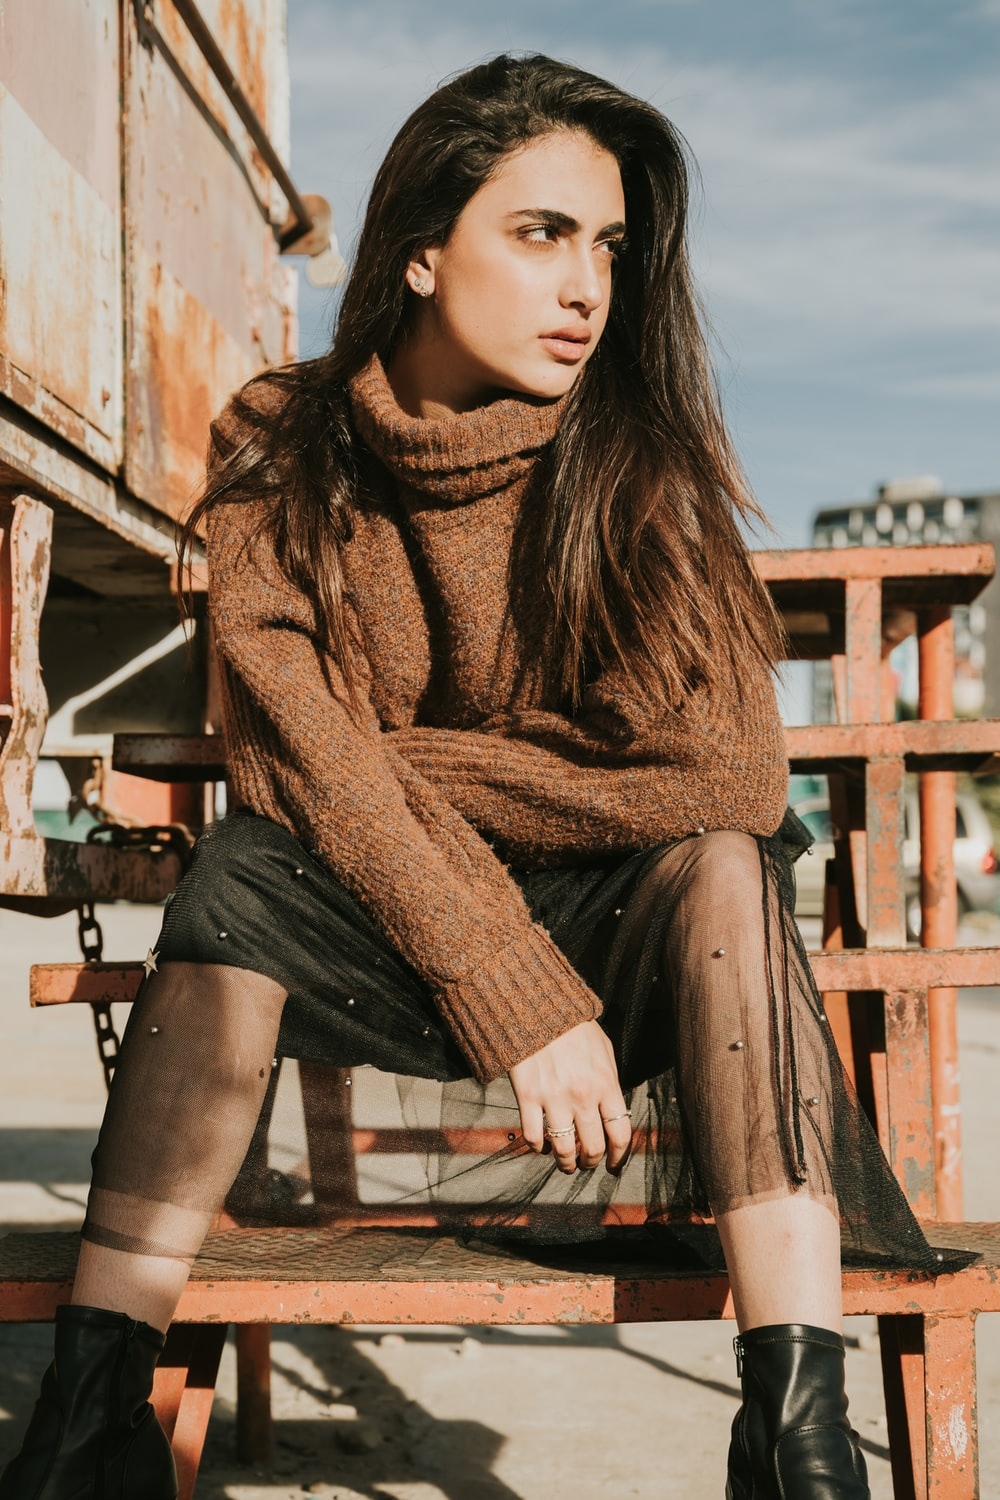 woman in brown sweater sitting on brown wooden bench during daytime